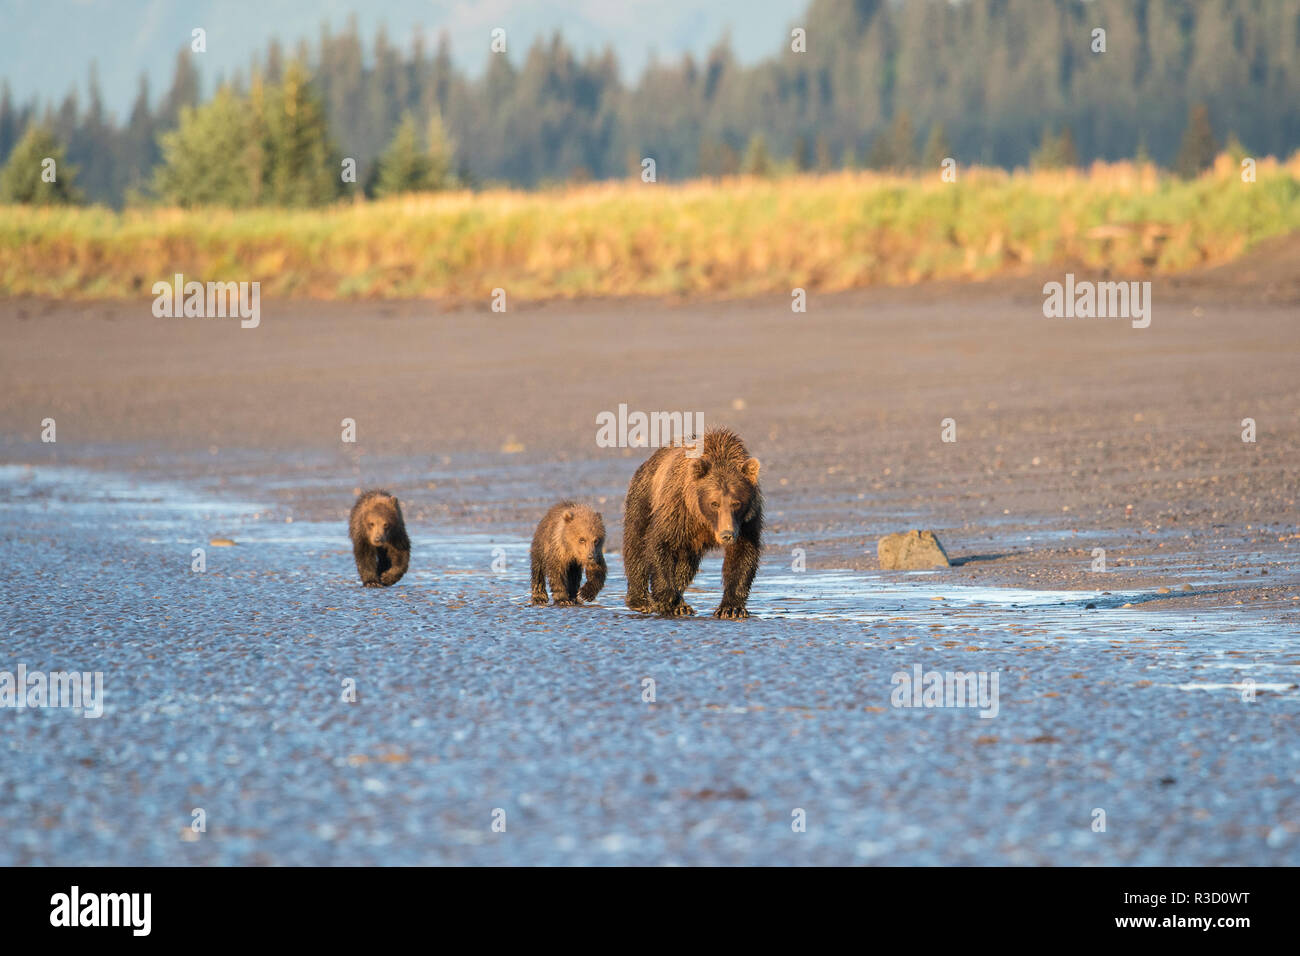 A mother brown bear (Ursus Arctos) walks with her two cubs along the tidal edge of the ocean in Lake Clark National Park, Alaska. - Stock Image